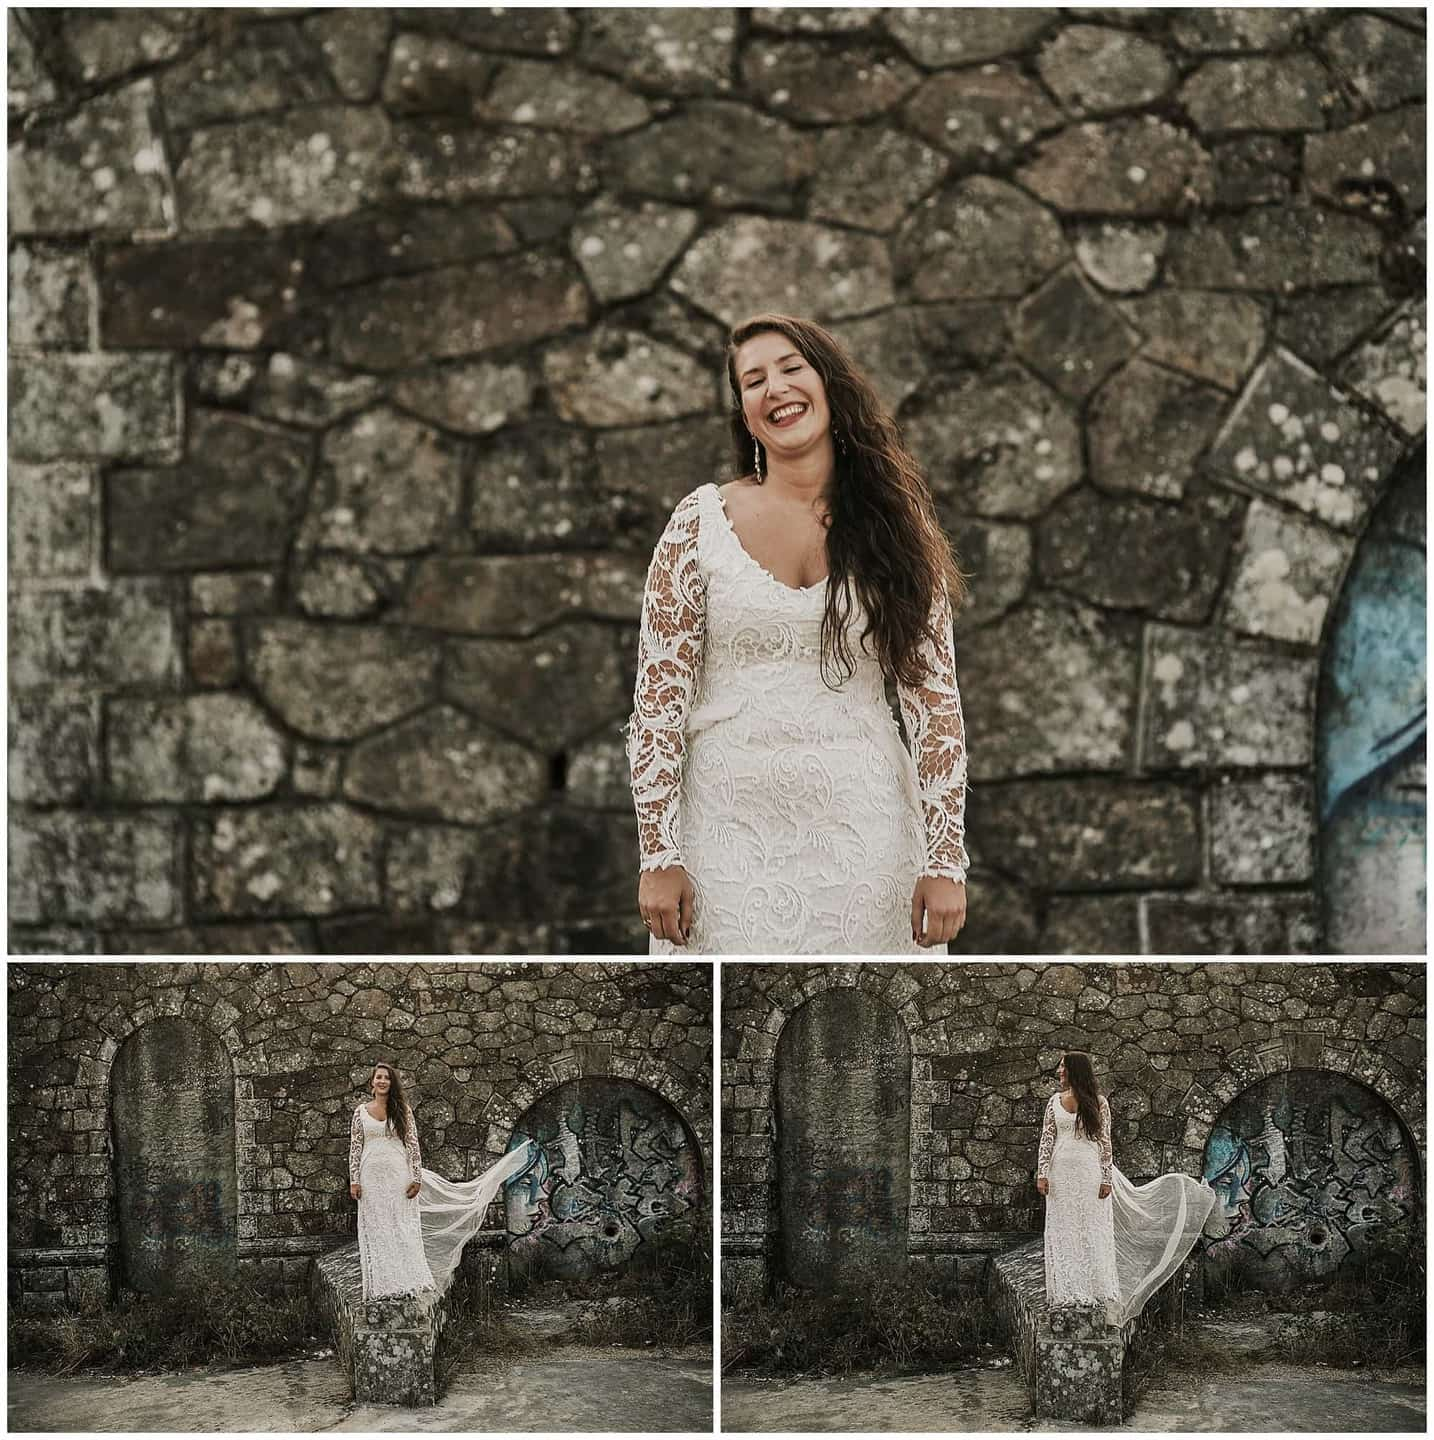 Trash The Dress Vero & Willy - Msanz Photographer -Fotógrafo de bodas en Pontevedra y Vigo